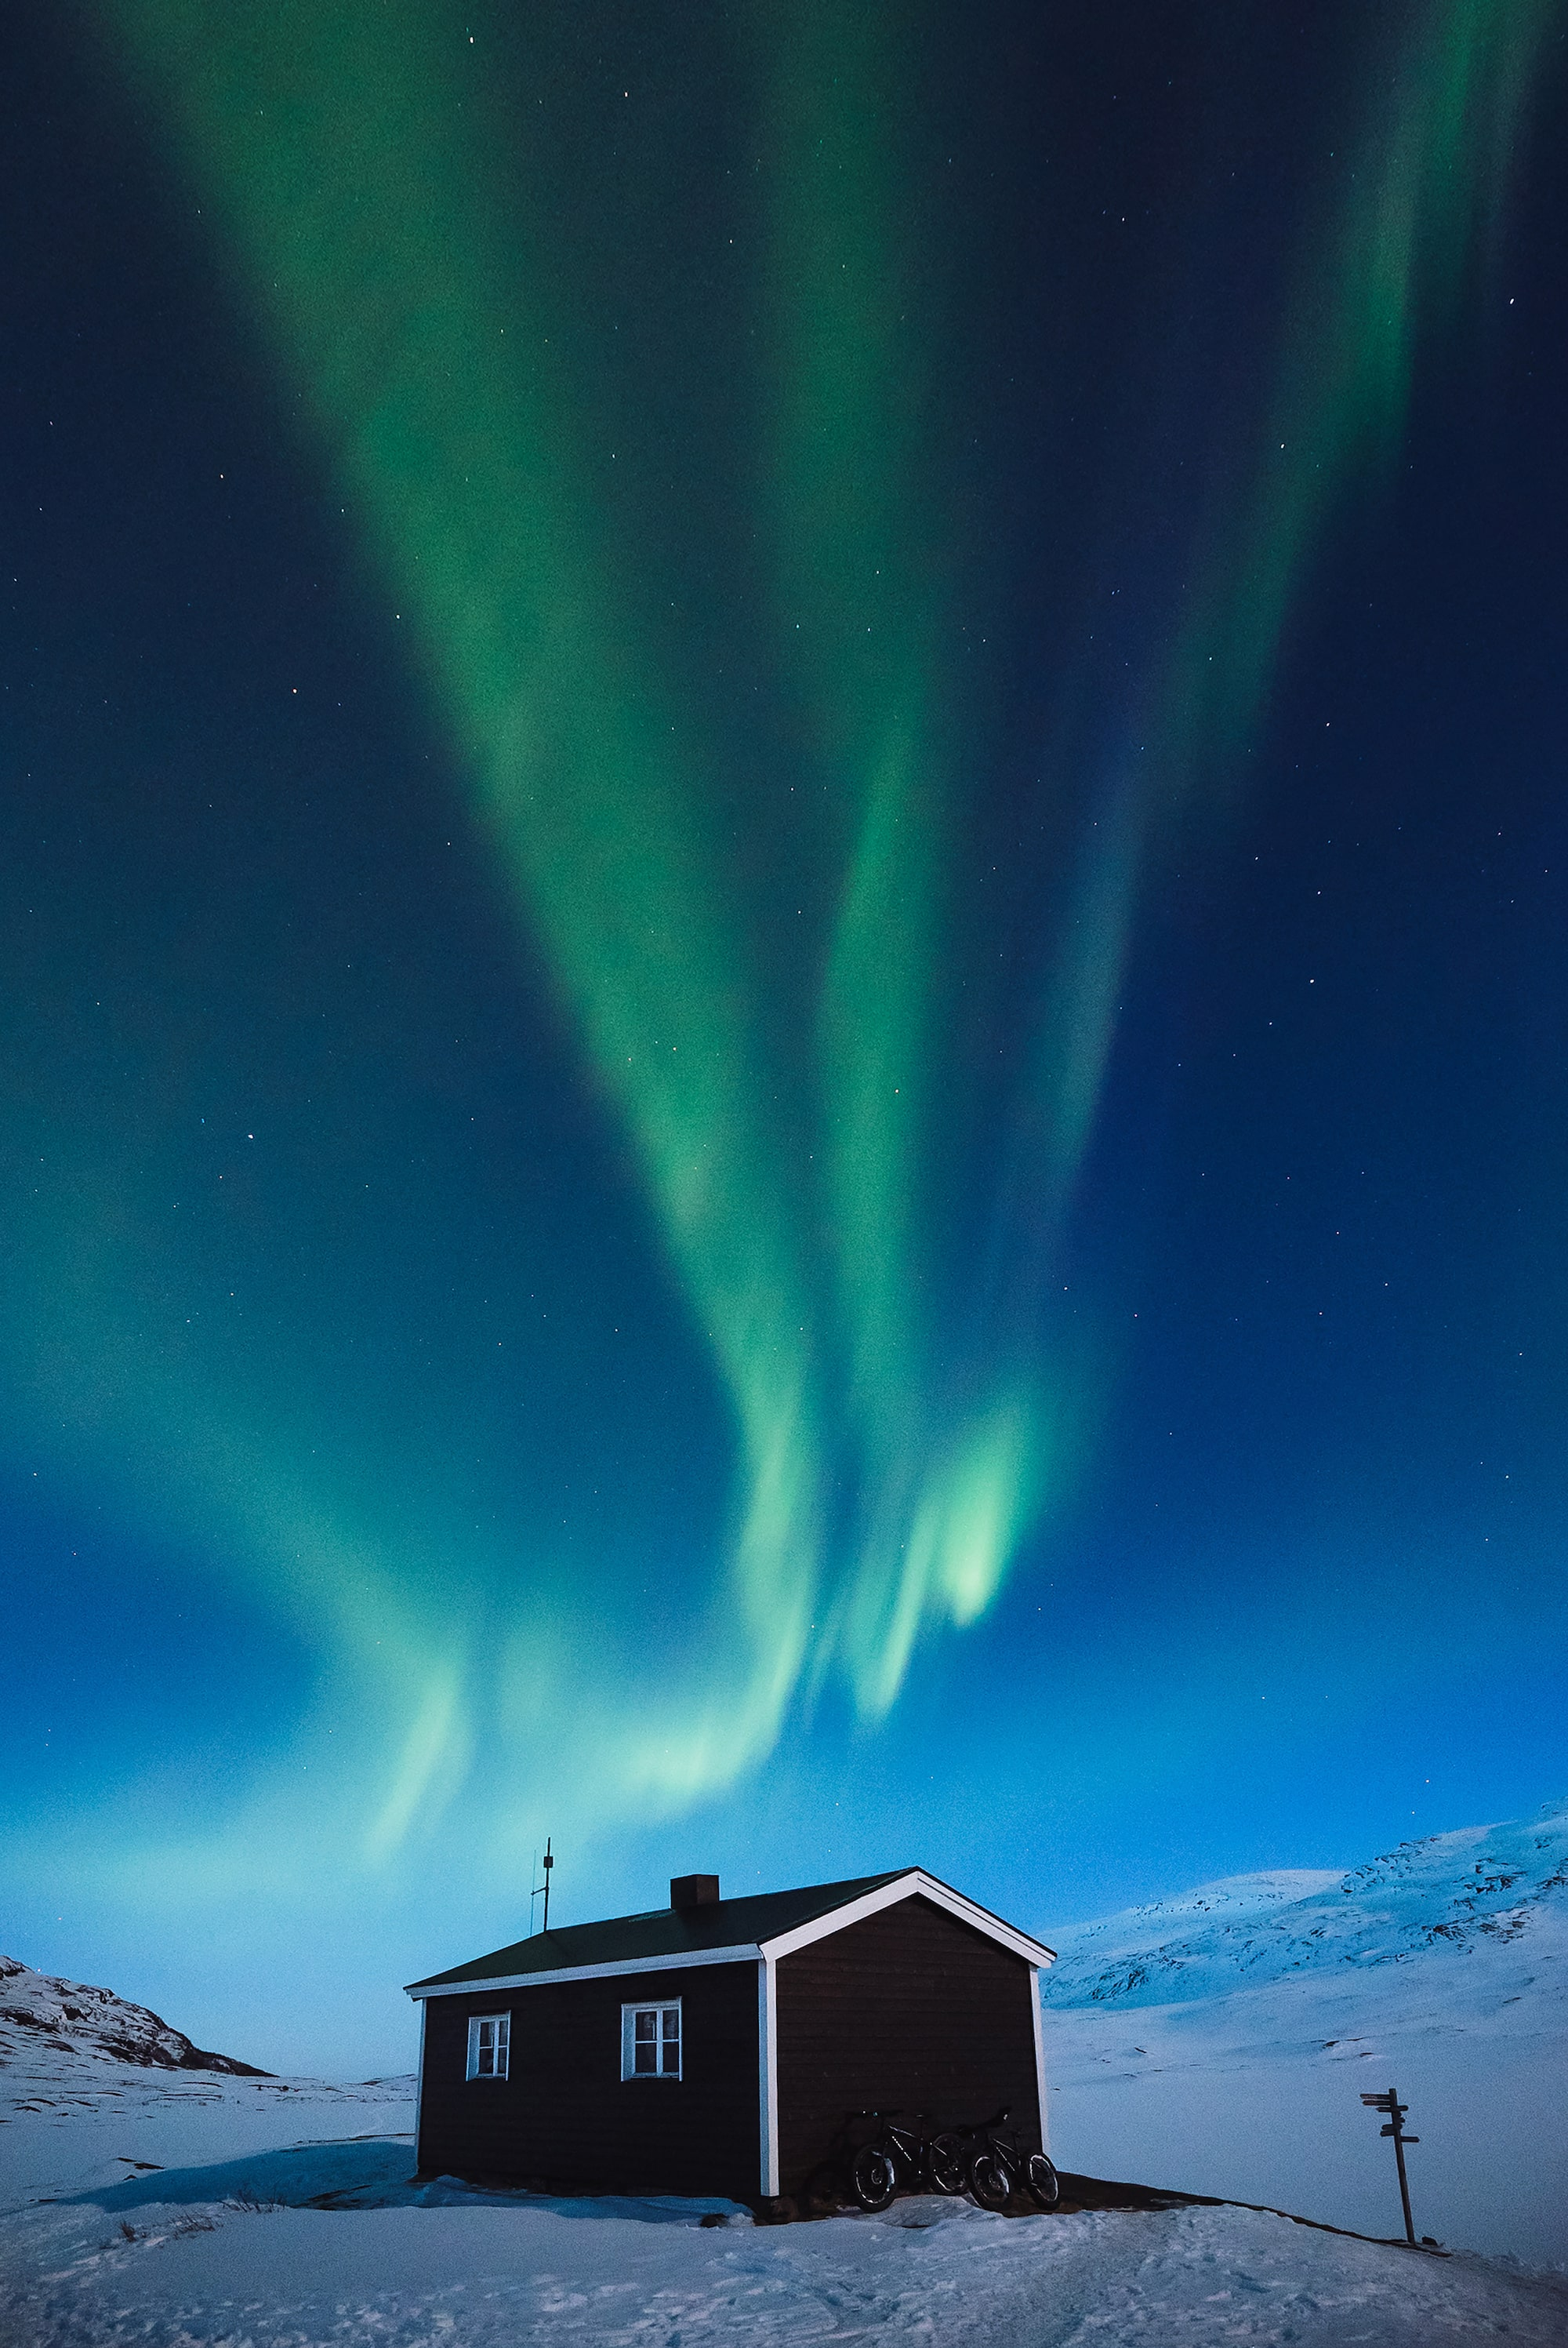 jaakko posti sony alph 7s remote cottage in iceland with the aurora overhead